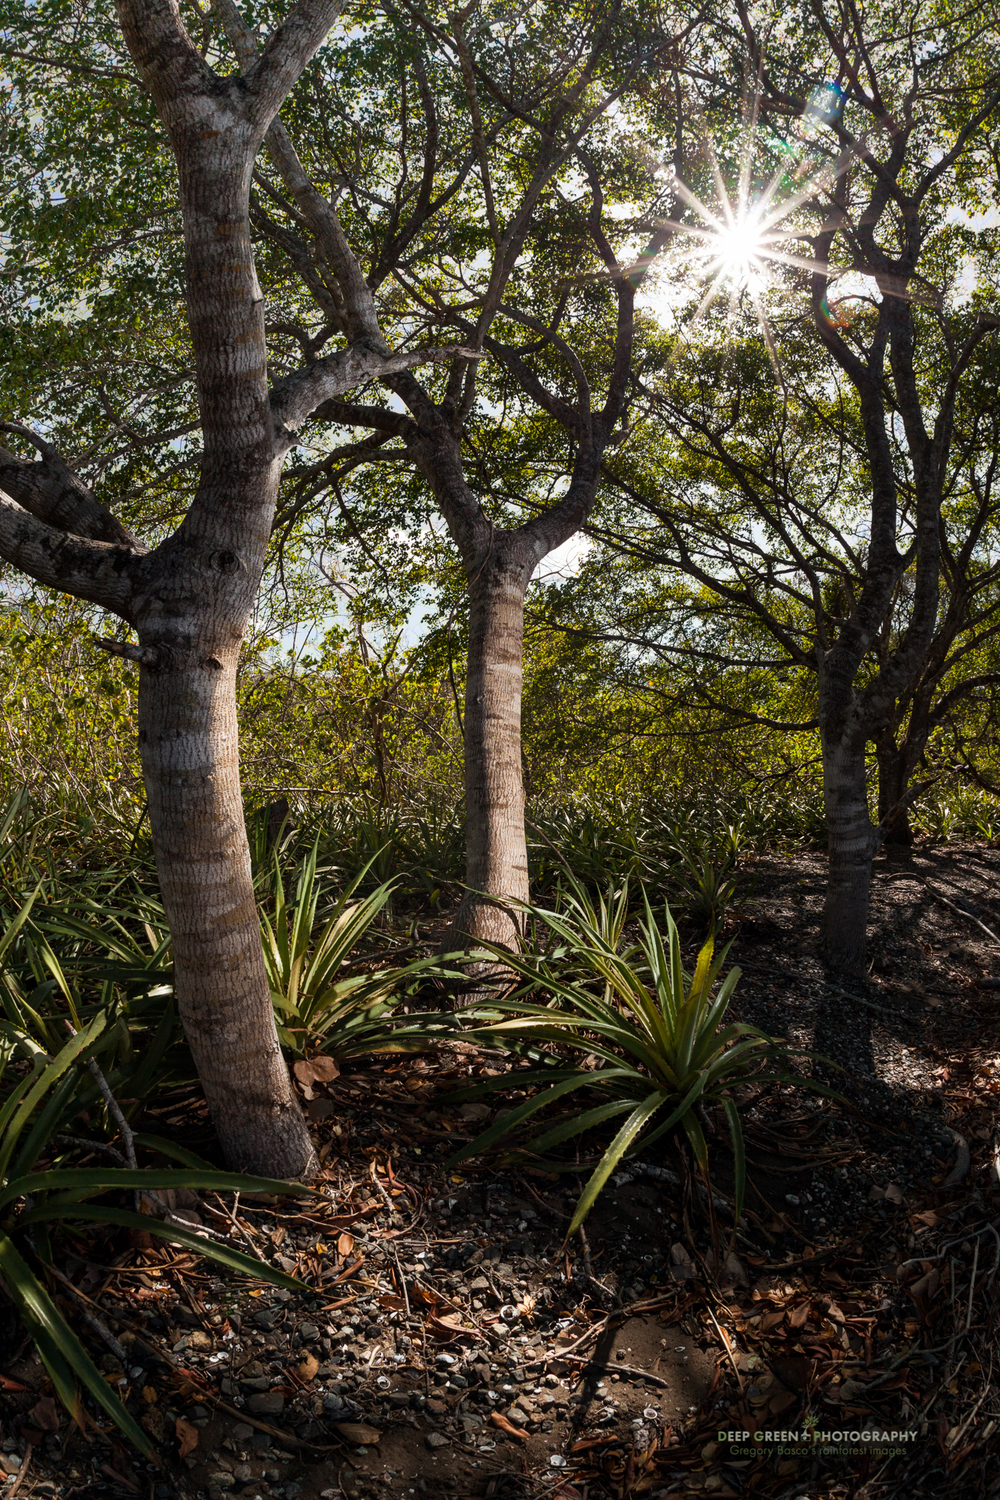 dry forest vegetation in Santa Rosa National Park